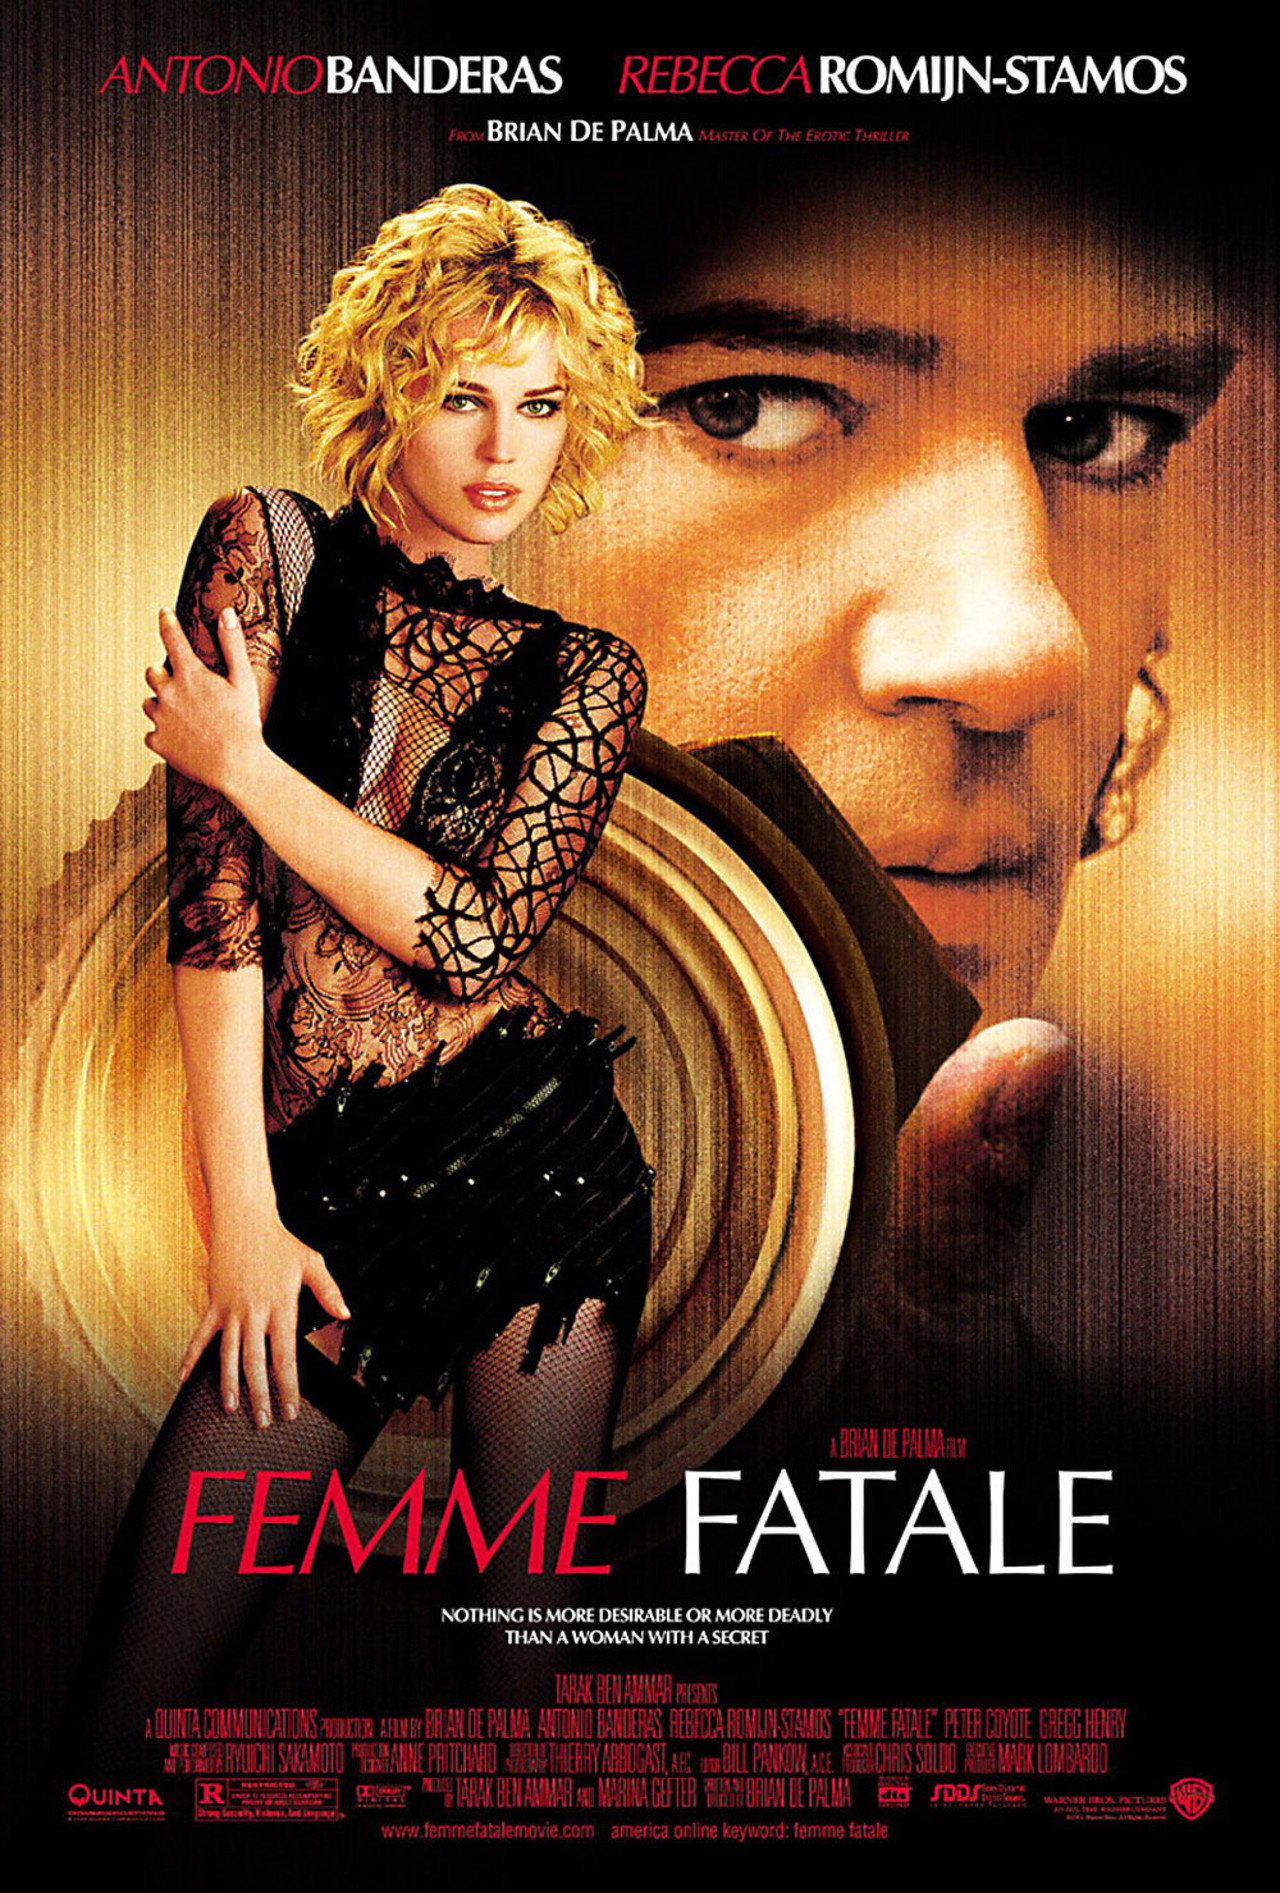 Day 18: Femme Fatale  - Another Day, another De Palma film…  Femme Fatale  may not go down as one of the most memorable De Palma films, it does take an interesting narrative and brings the whole film full circle, only the way De Palma could.